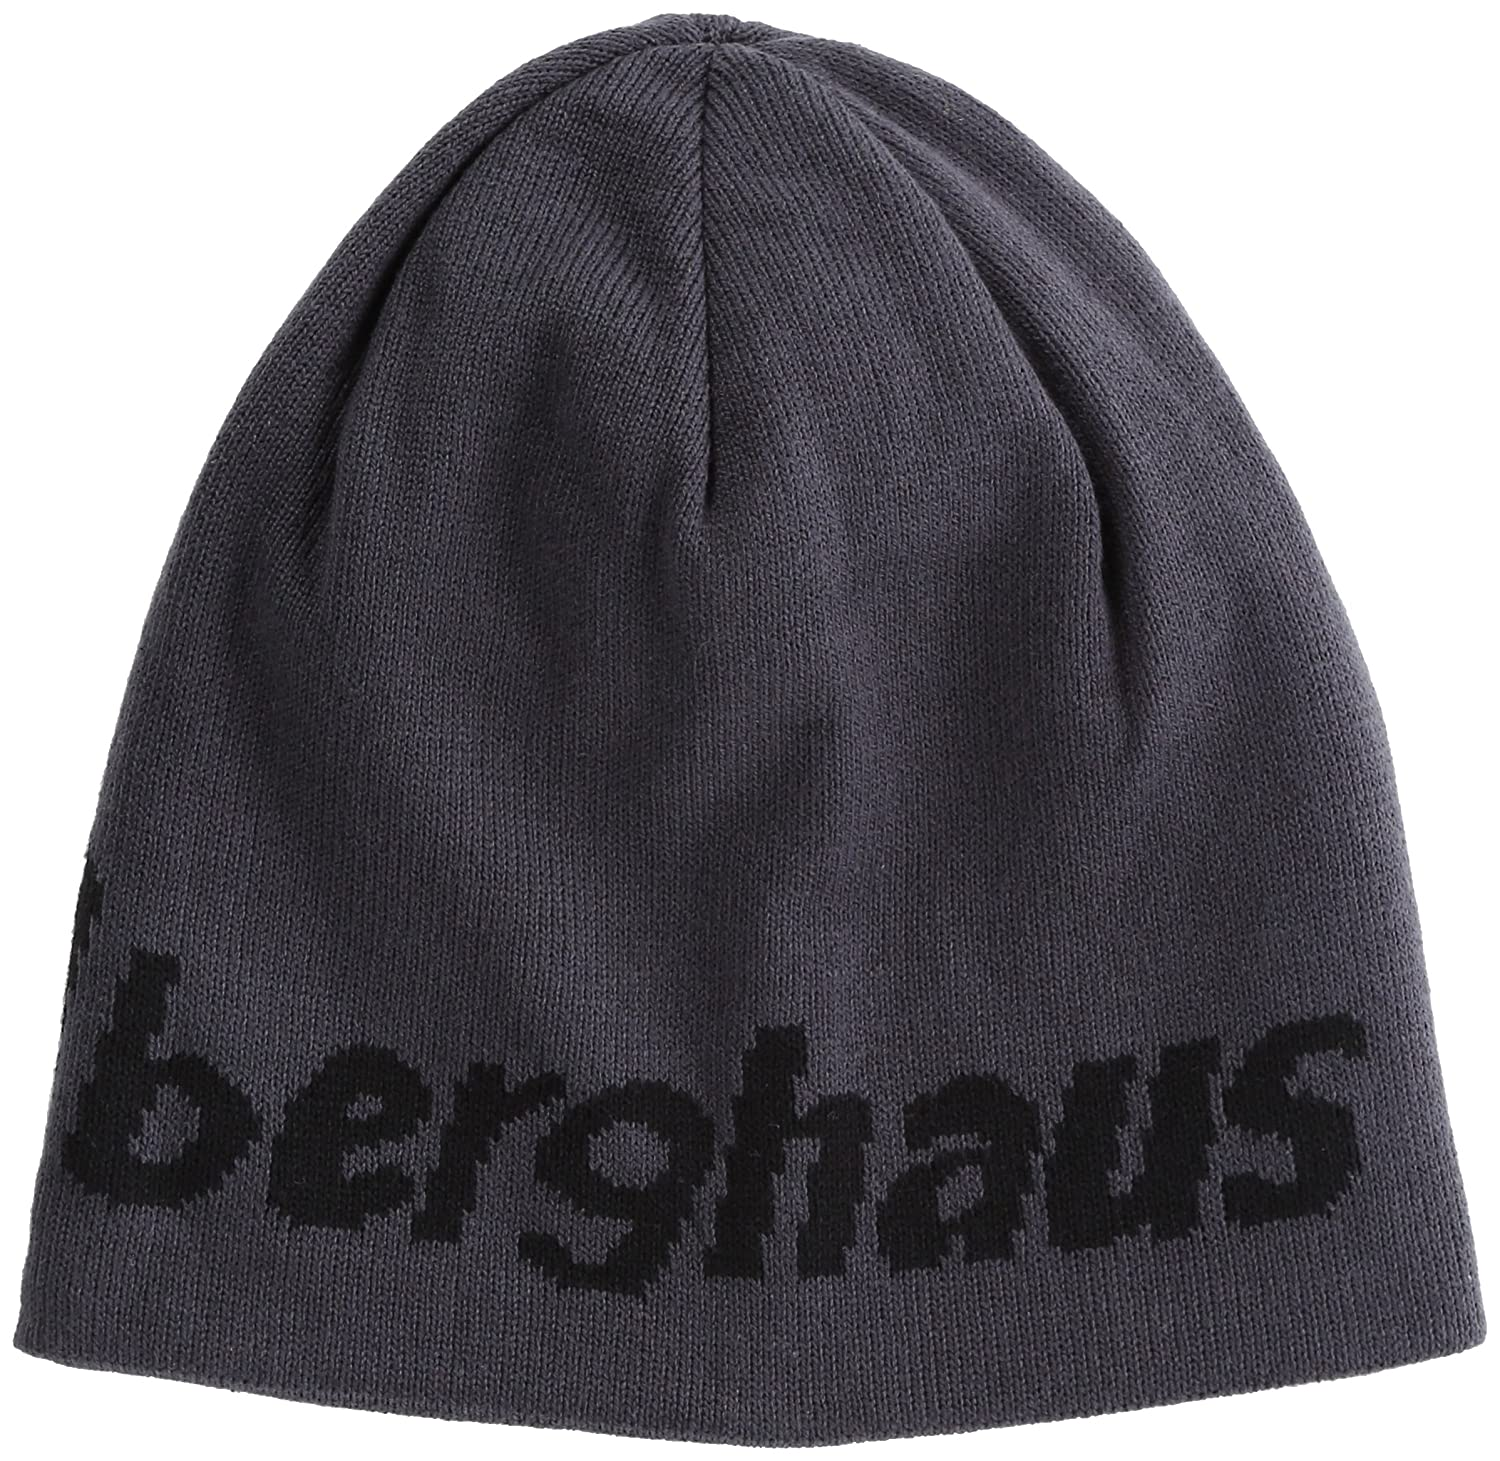 482bd47ee67 Berghaus Ulvetanna Men s Outdoor Reversible Beanie available in Carbon Black  - One Size  Amazon.co.uk  Sports   Outdoors